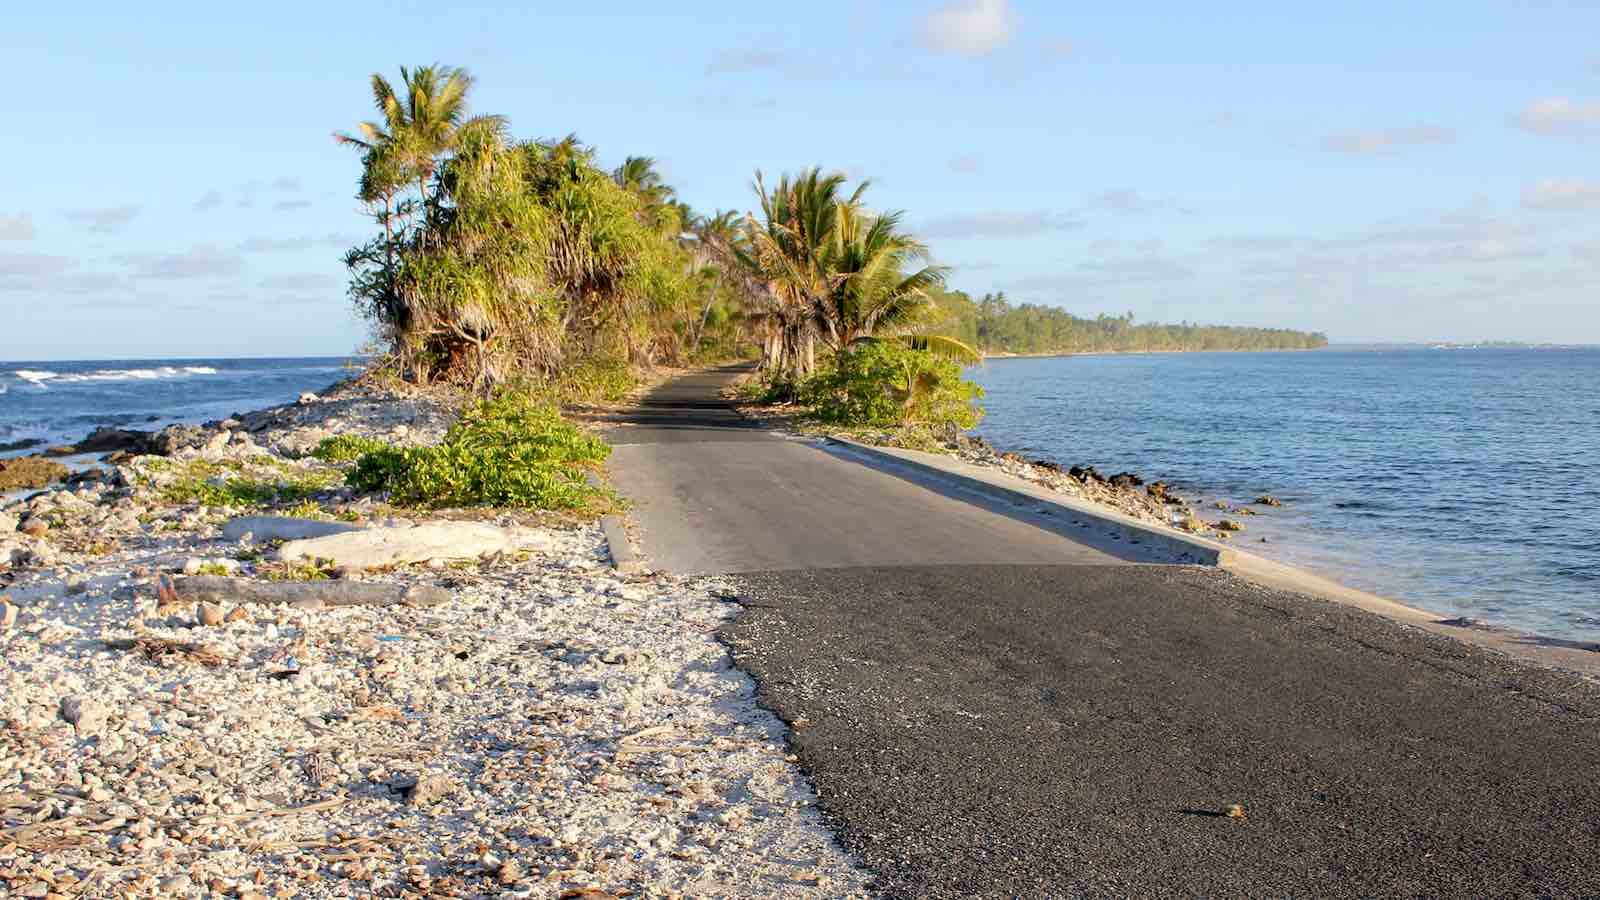 On the road in Tuvalu (Photo: DFAT/Flickr)